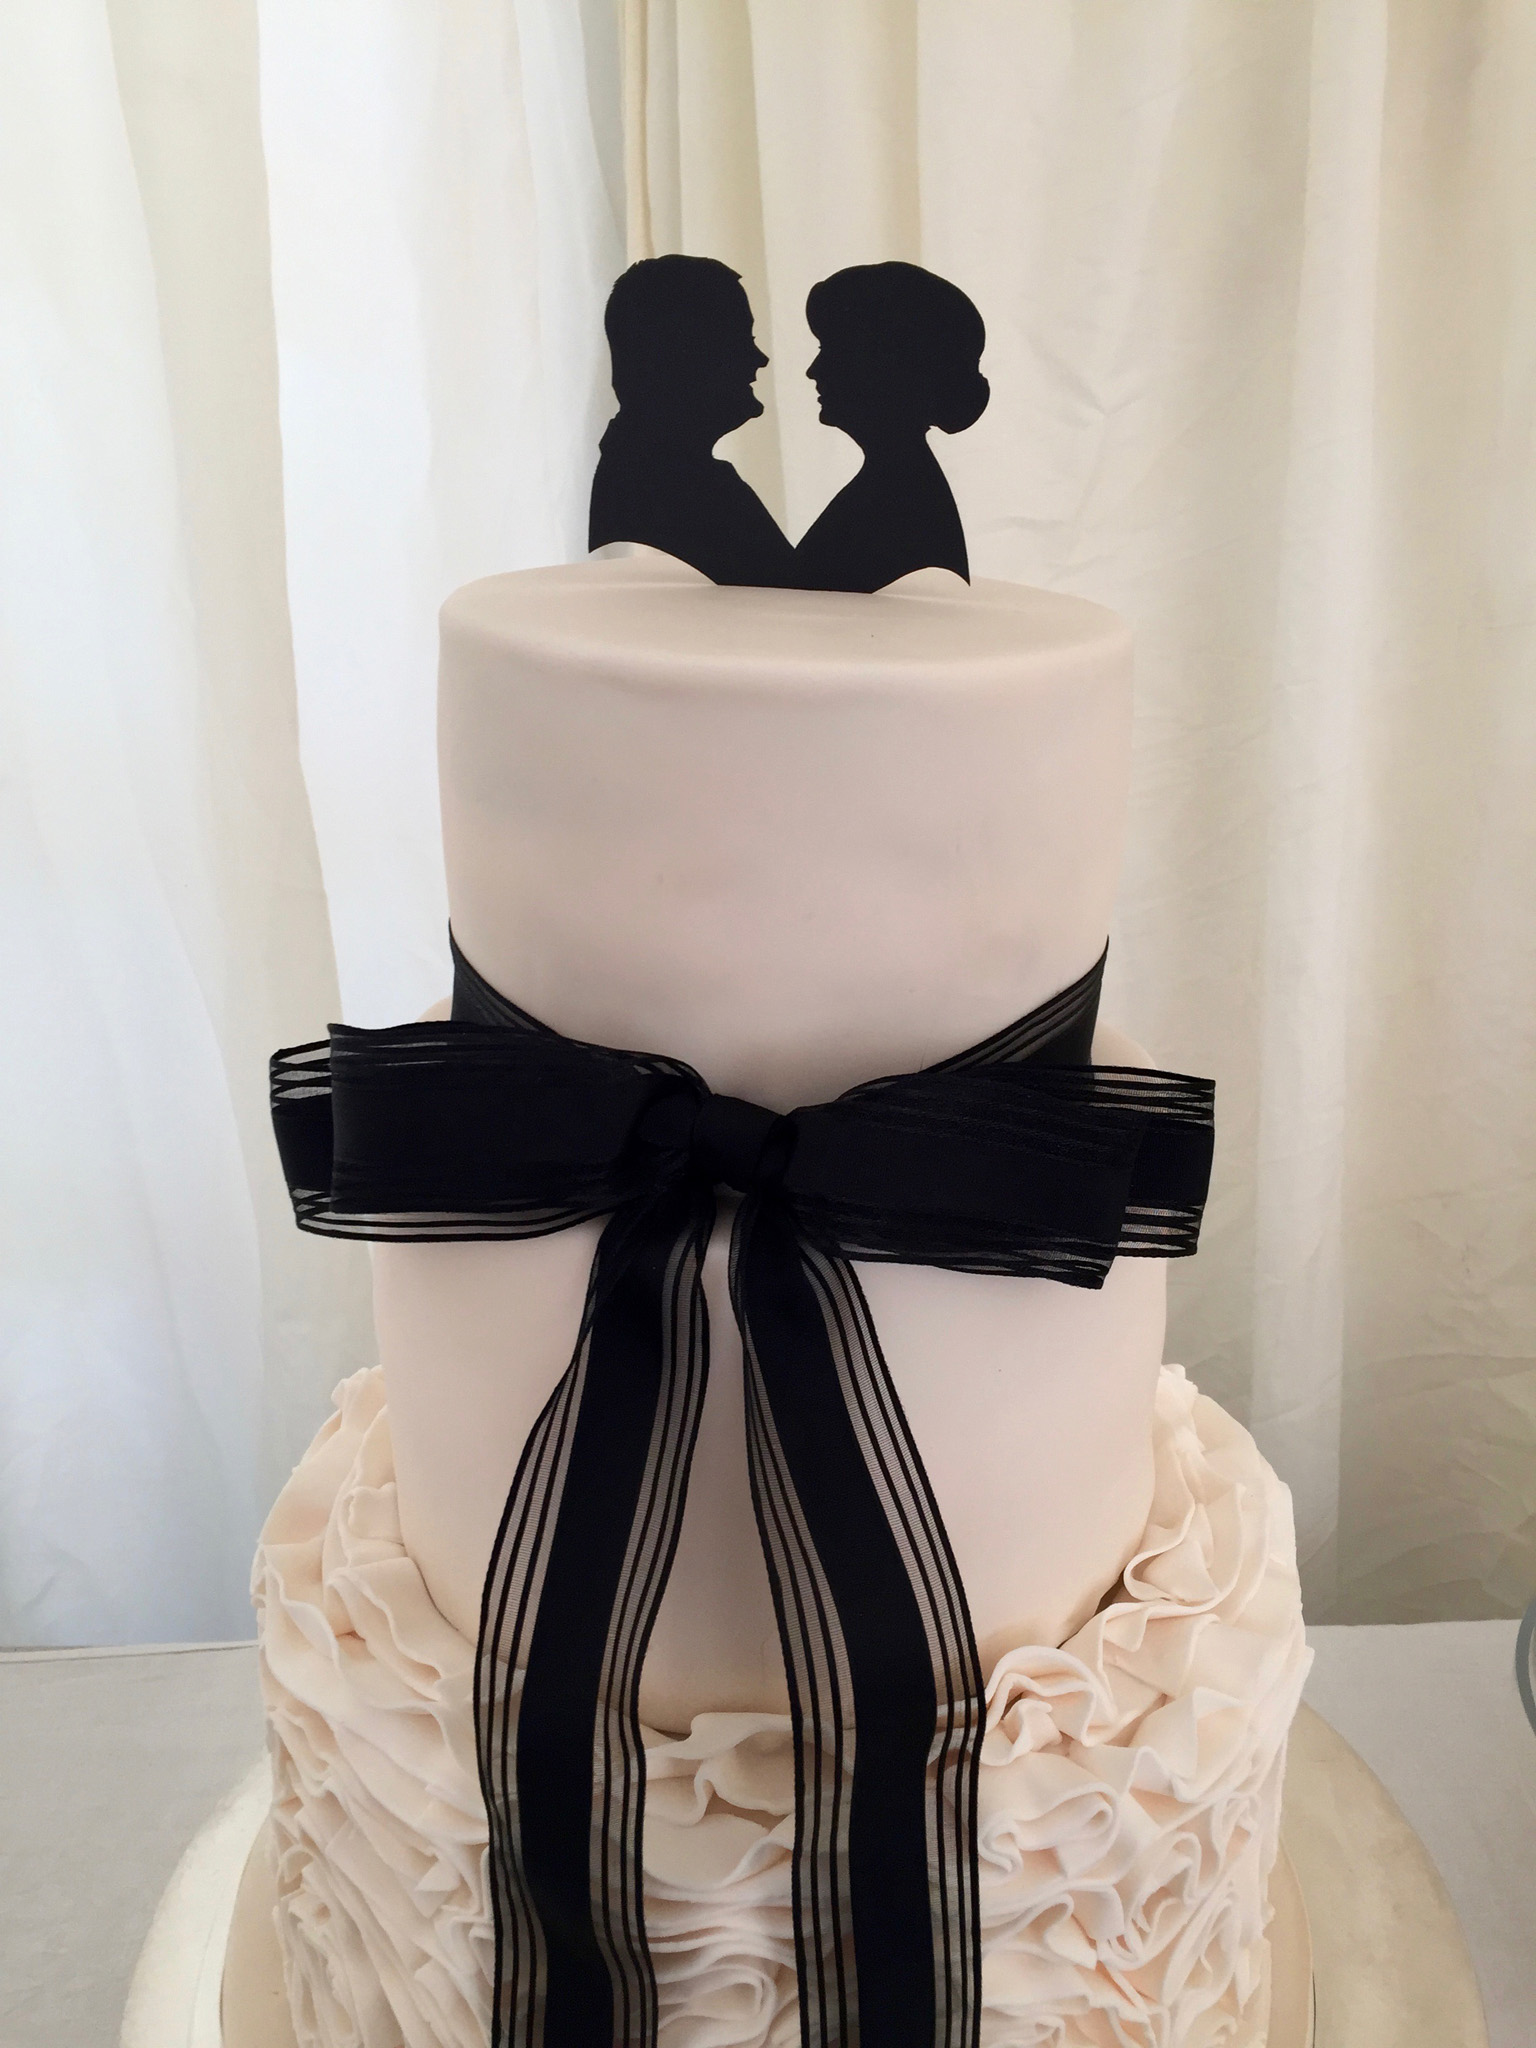 Artis Wedding Cake : Wedding cake silhouette, cut from card or icing   The ...